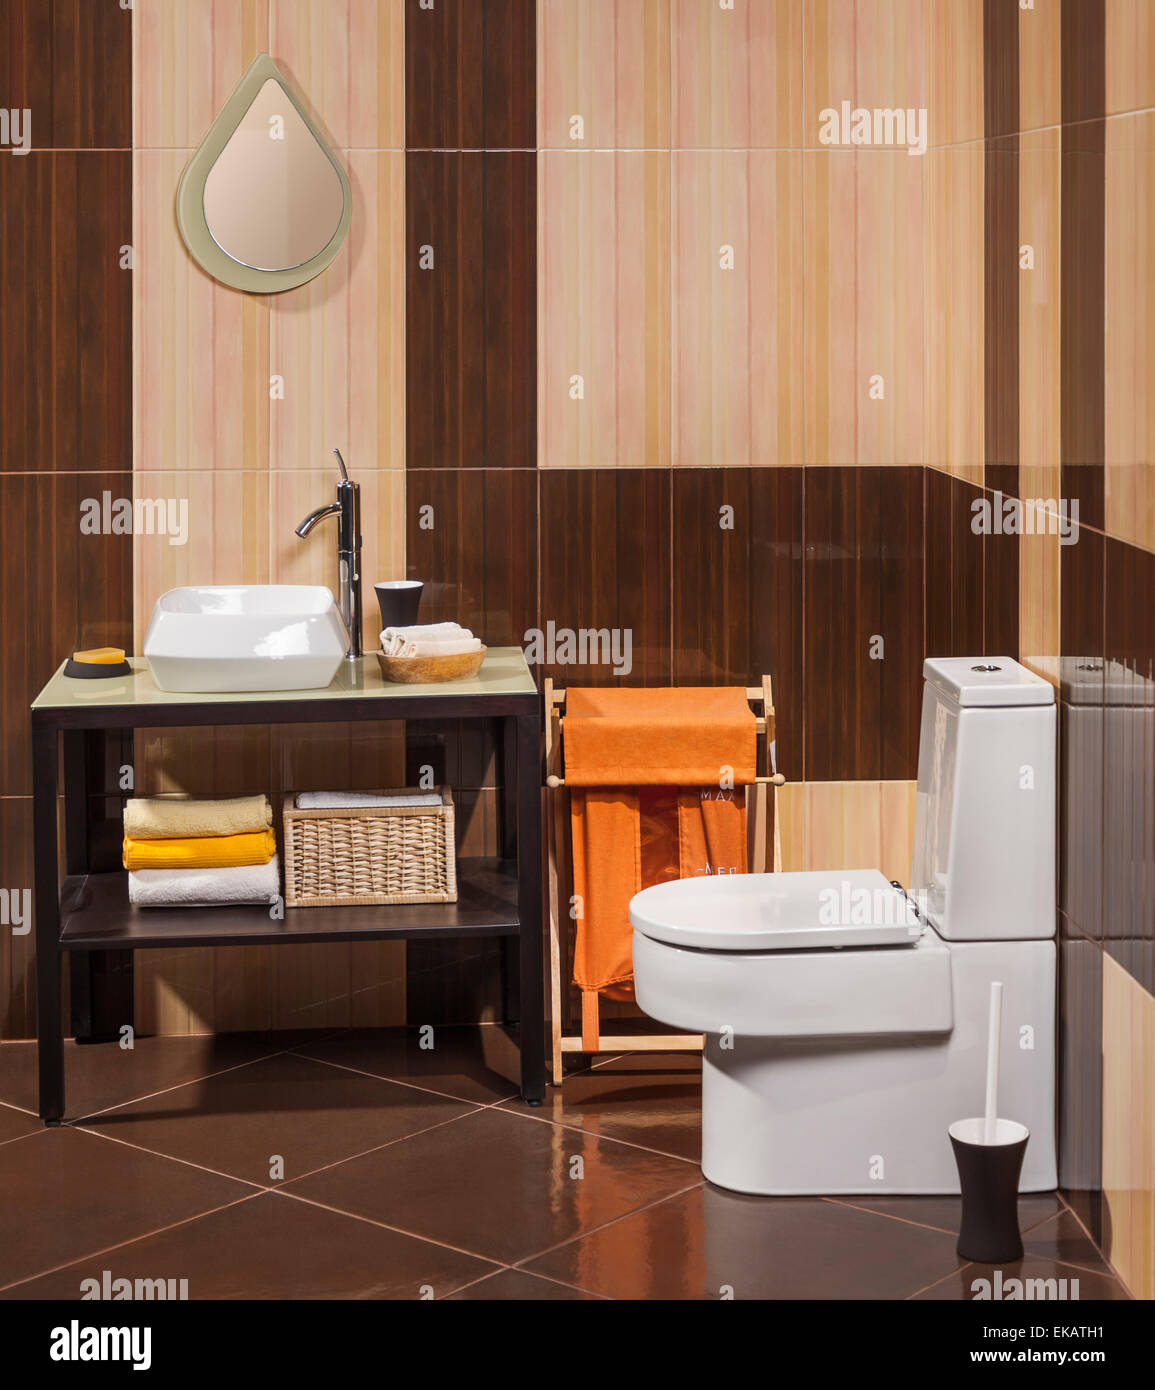 detail of a modern bathroom with sink, toilet and laundry basket - Stock Image